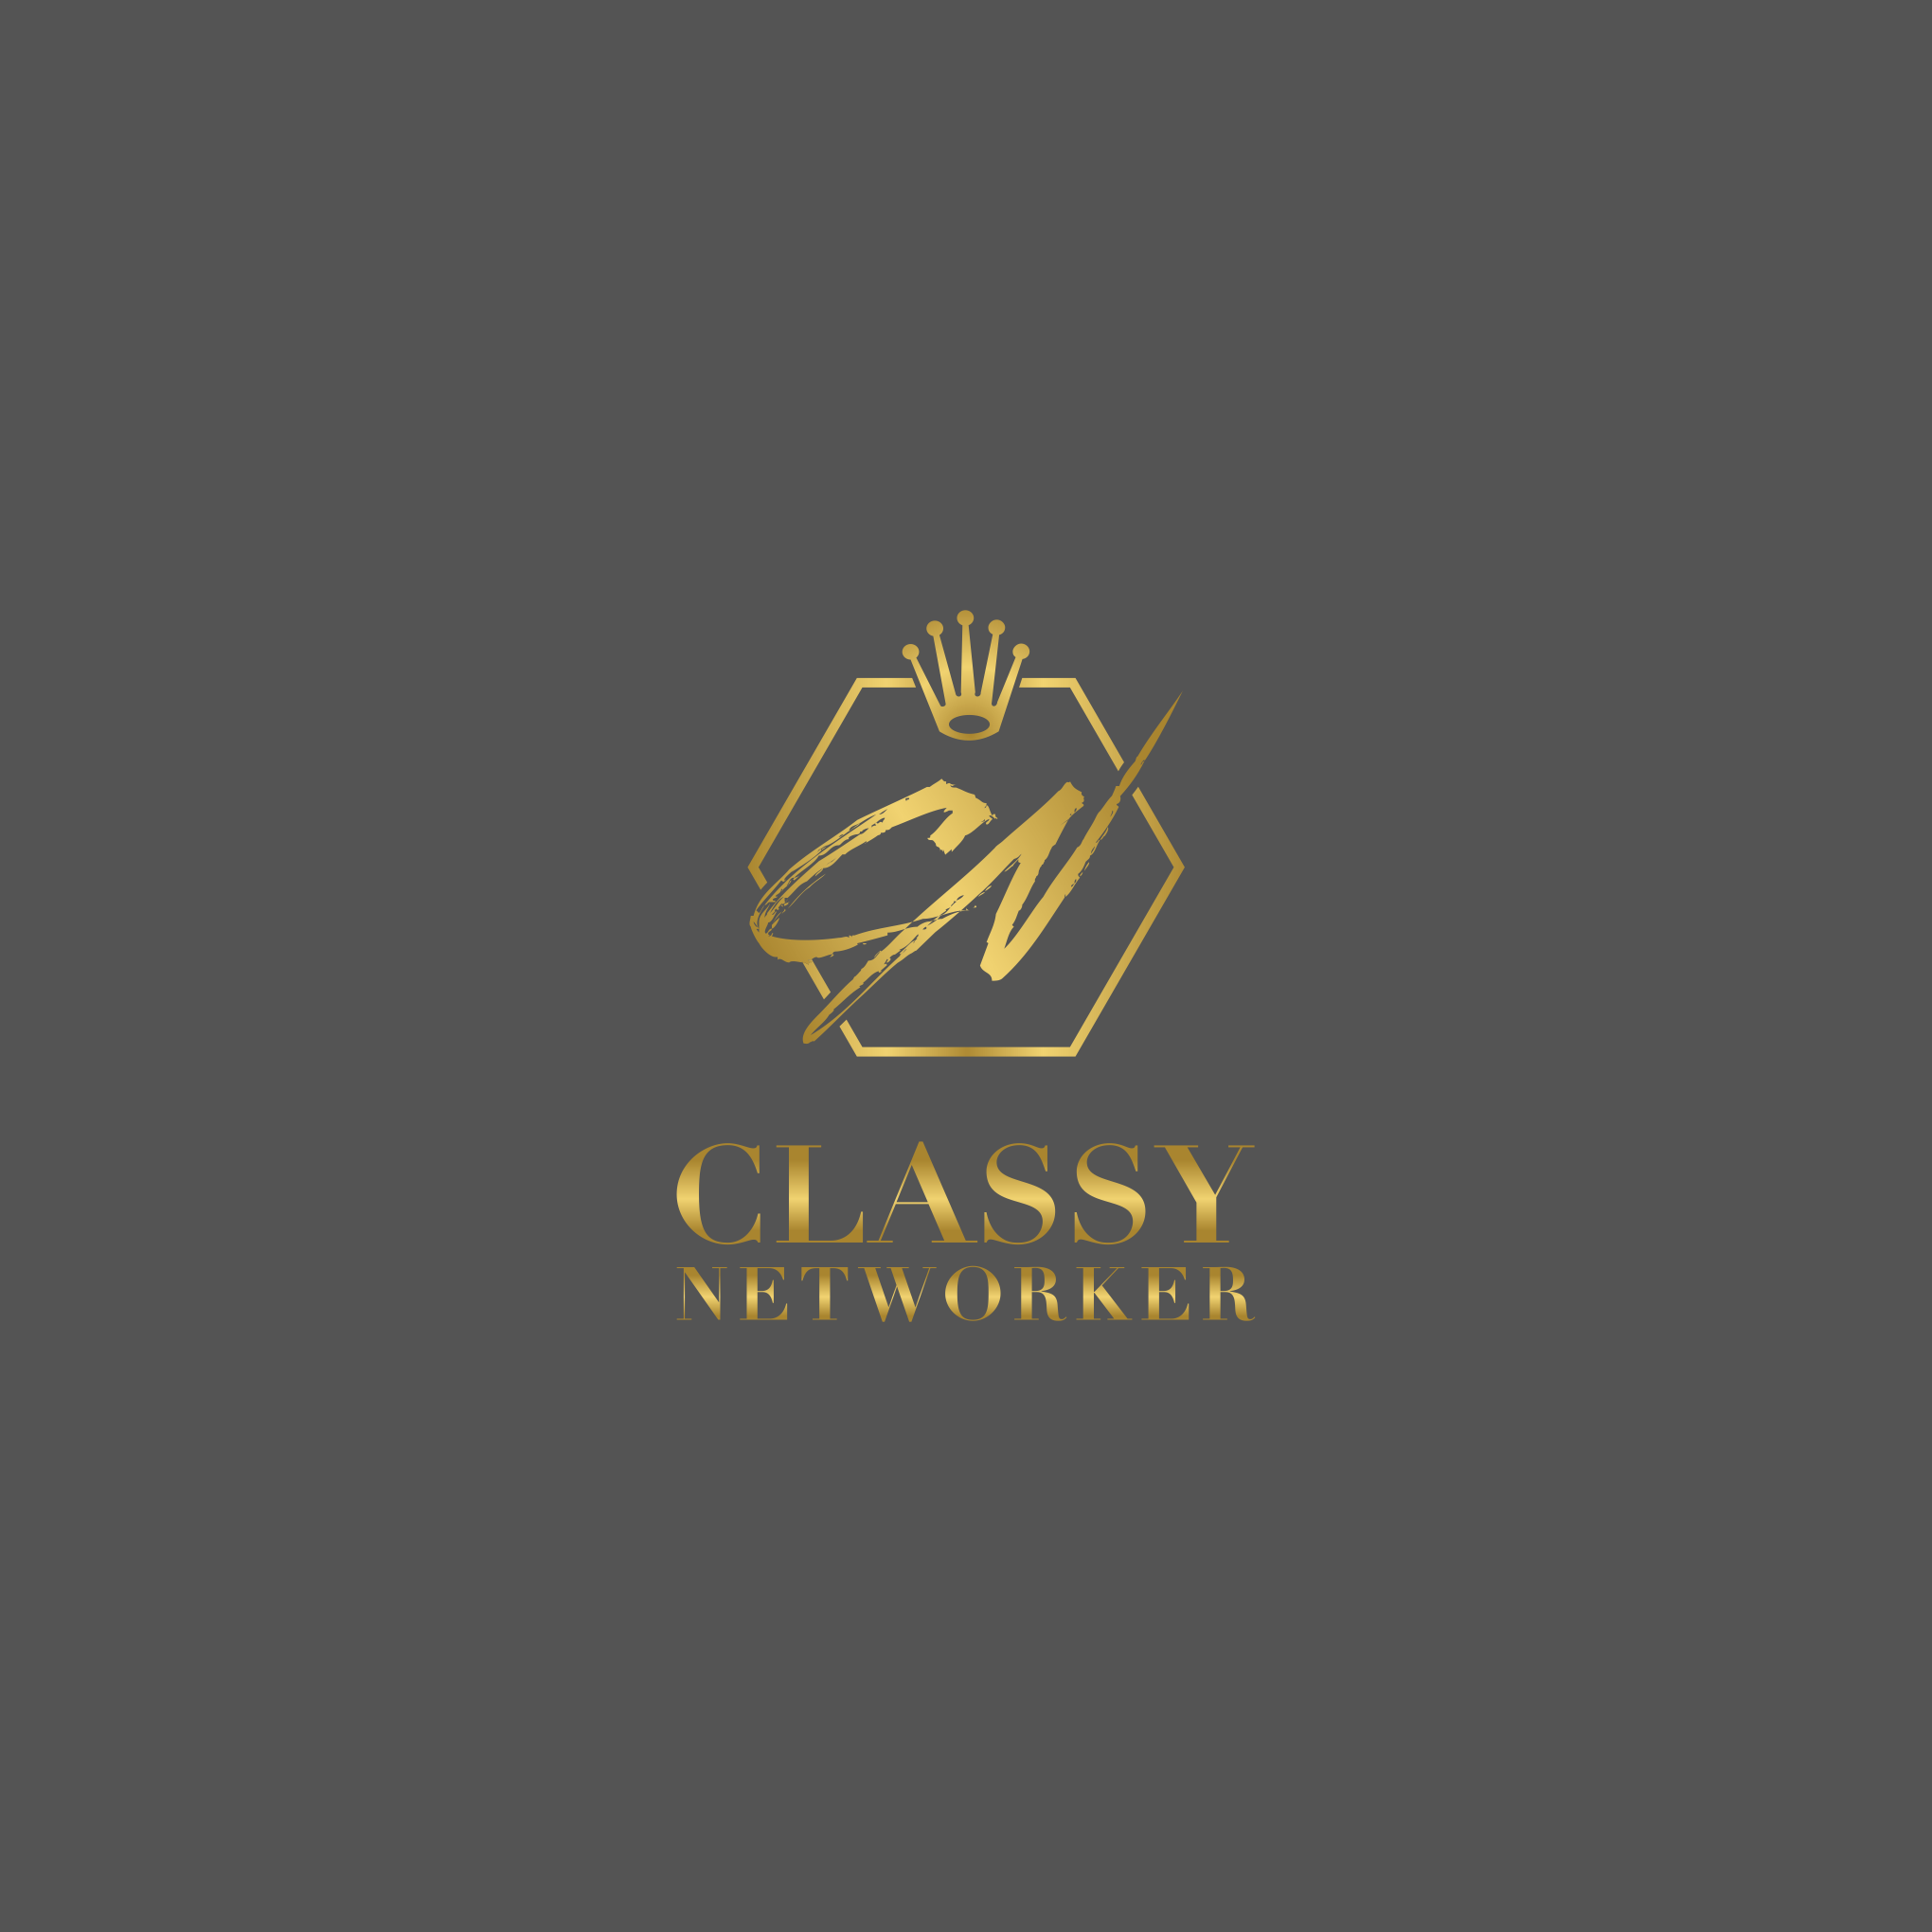 Classy Networker needs a CLASSY Revamp!